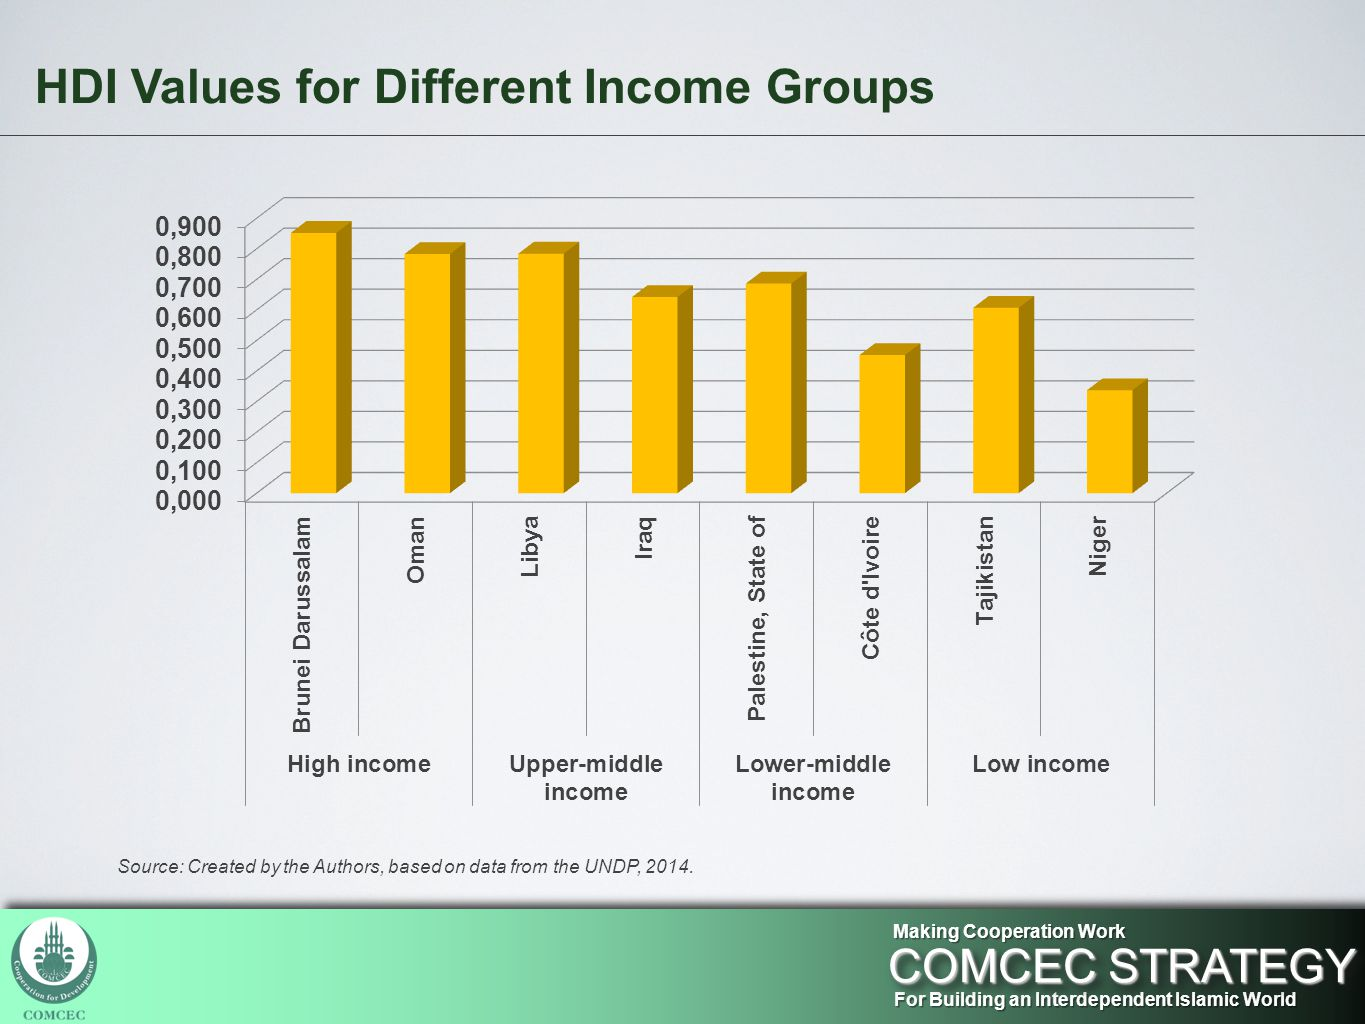 HDI Values for Different Income Groups For Building an Interdependent Islamic World COMCEC STRATEGY Making Cooperation Work Source: Created by the Authors, based on data from the UNDP, 2014.